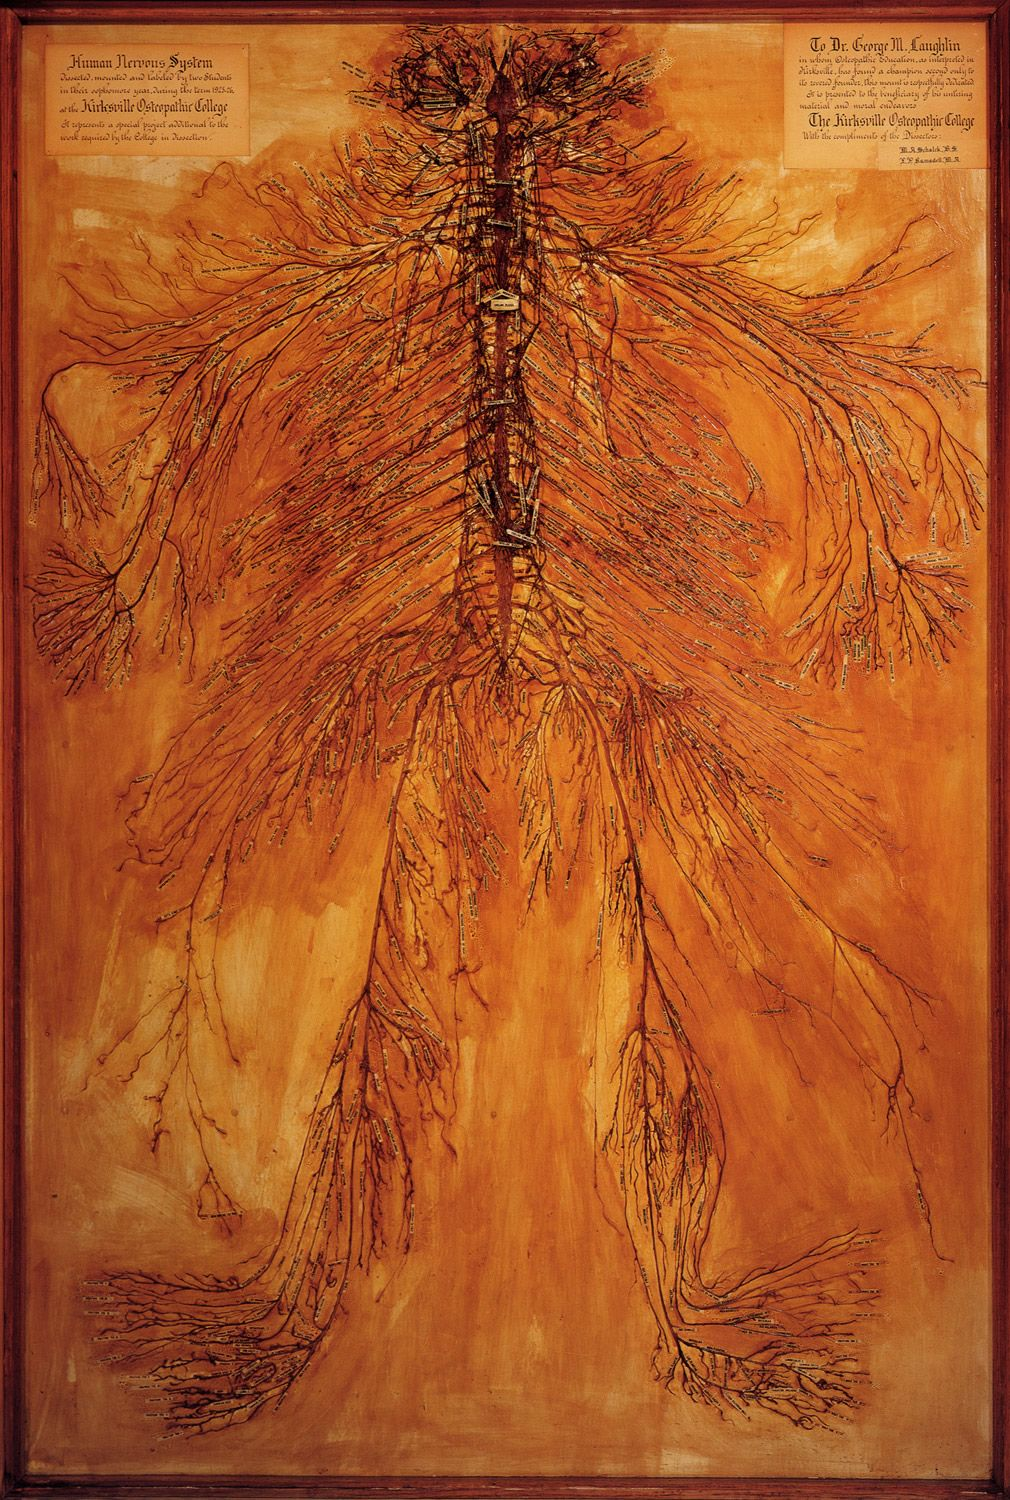 hight resolution of body and light photo human nervous system systems art medical history human